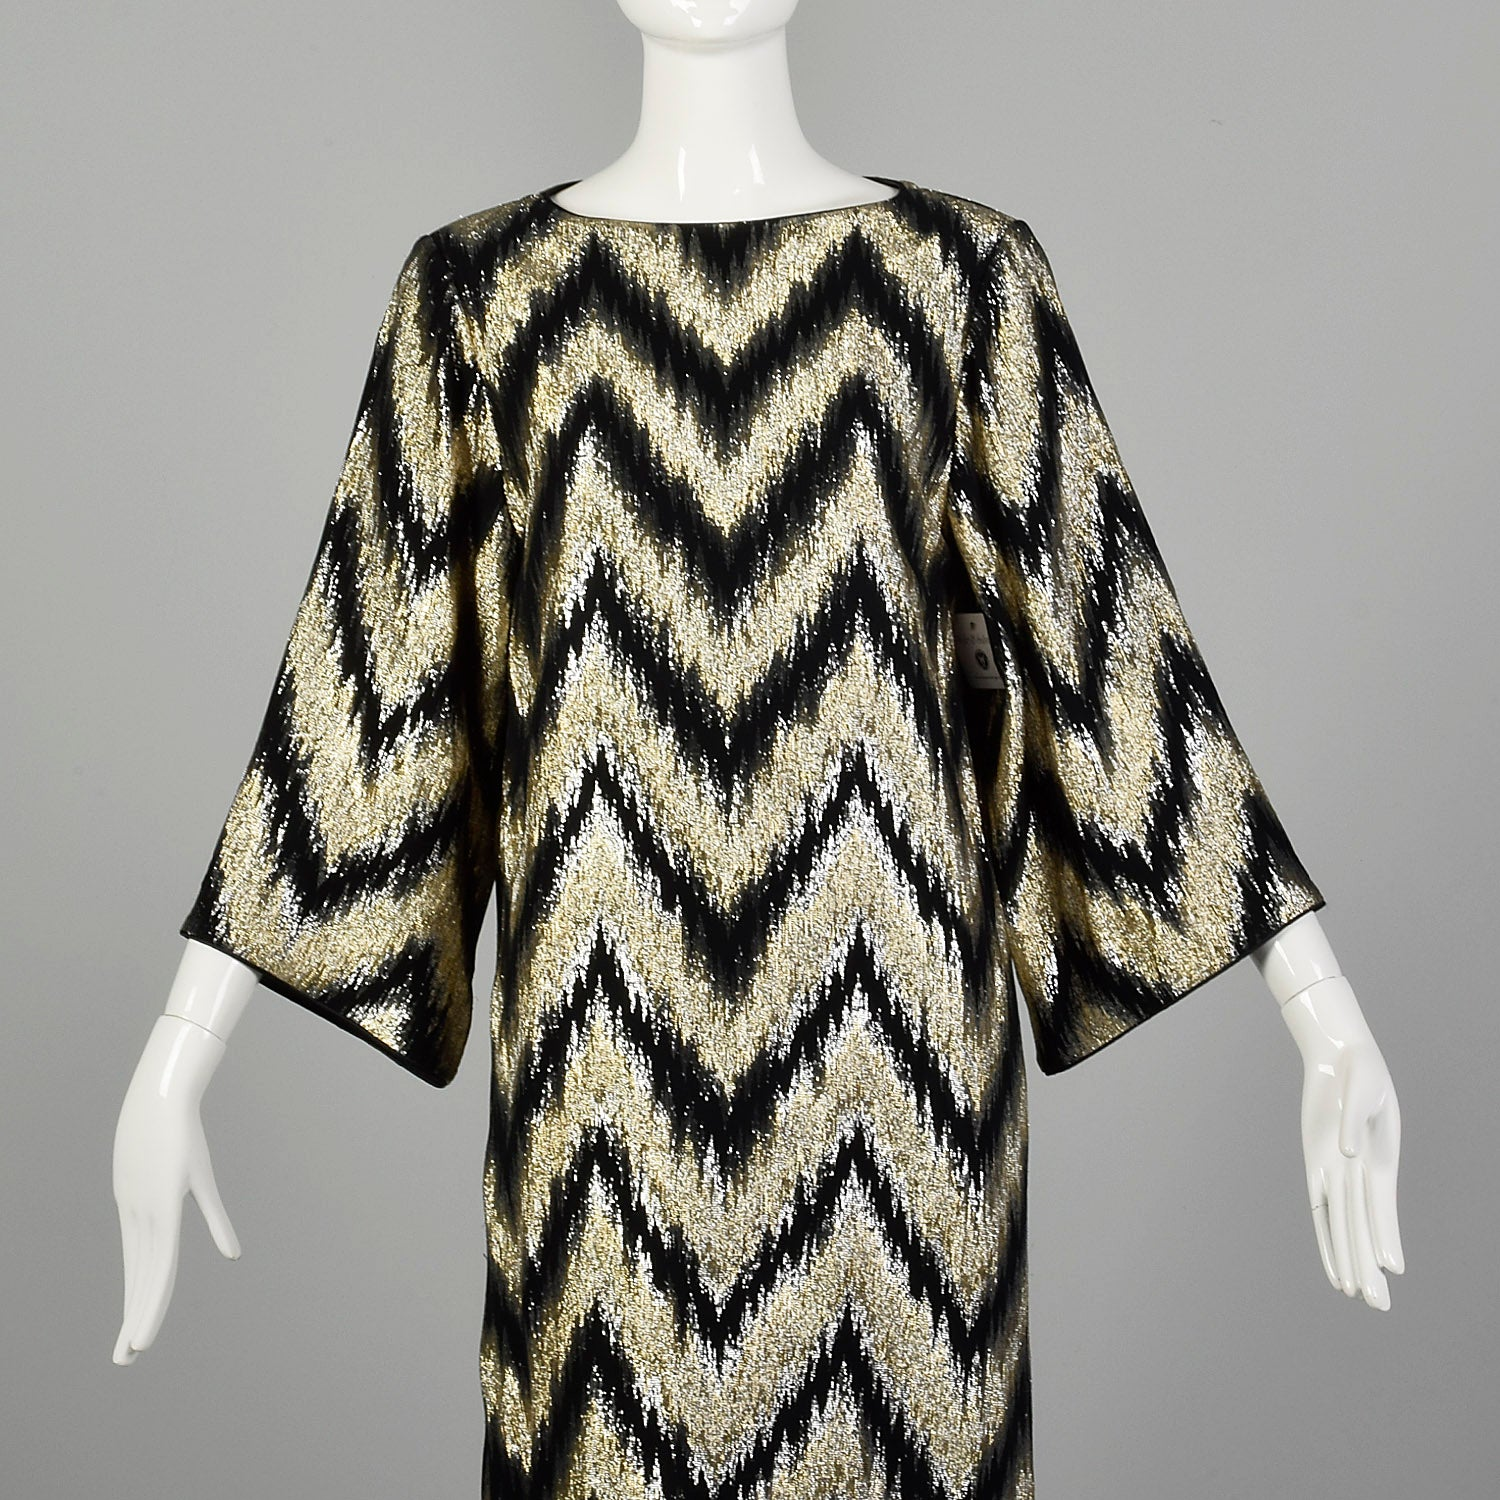 Small 1970s Metallic Kaftan Wide Sleeve Flowy Gold and Black Maxi Dress